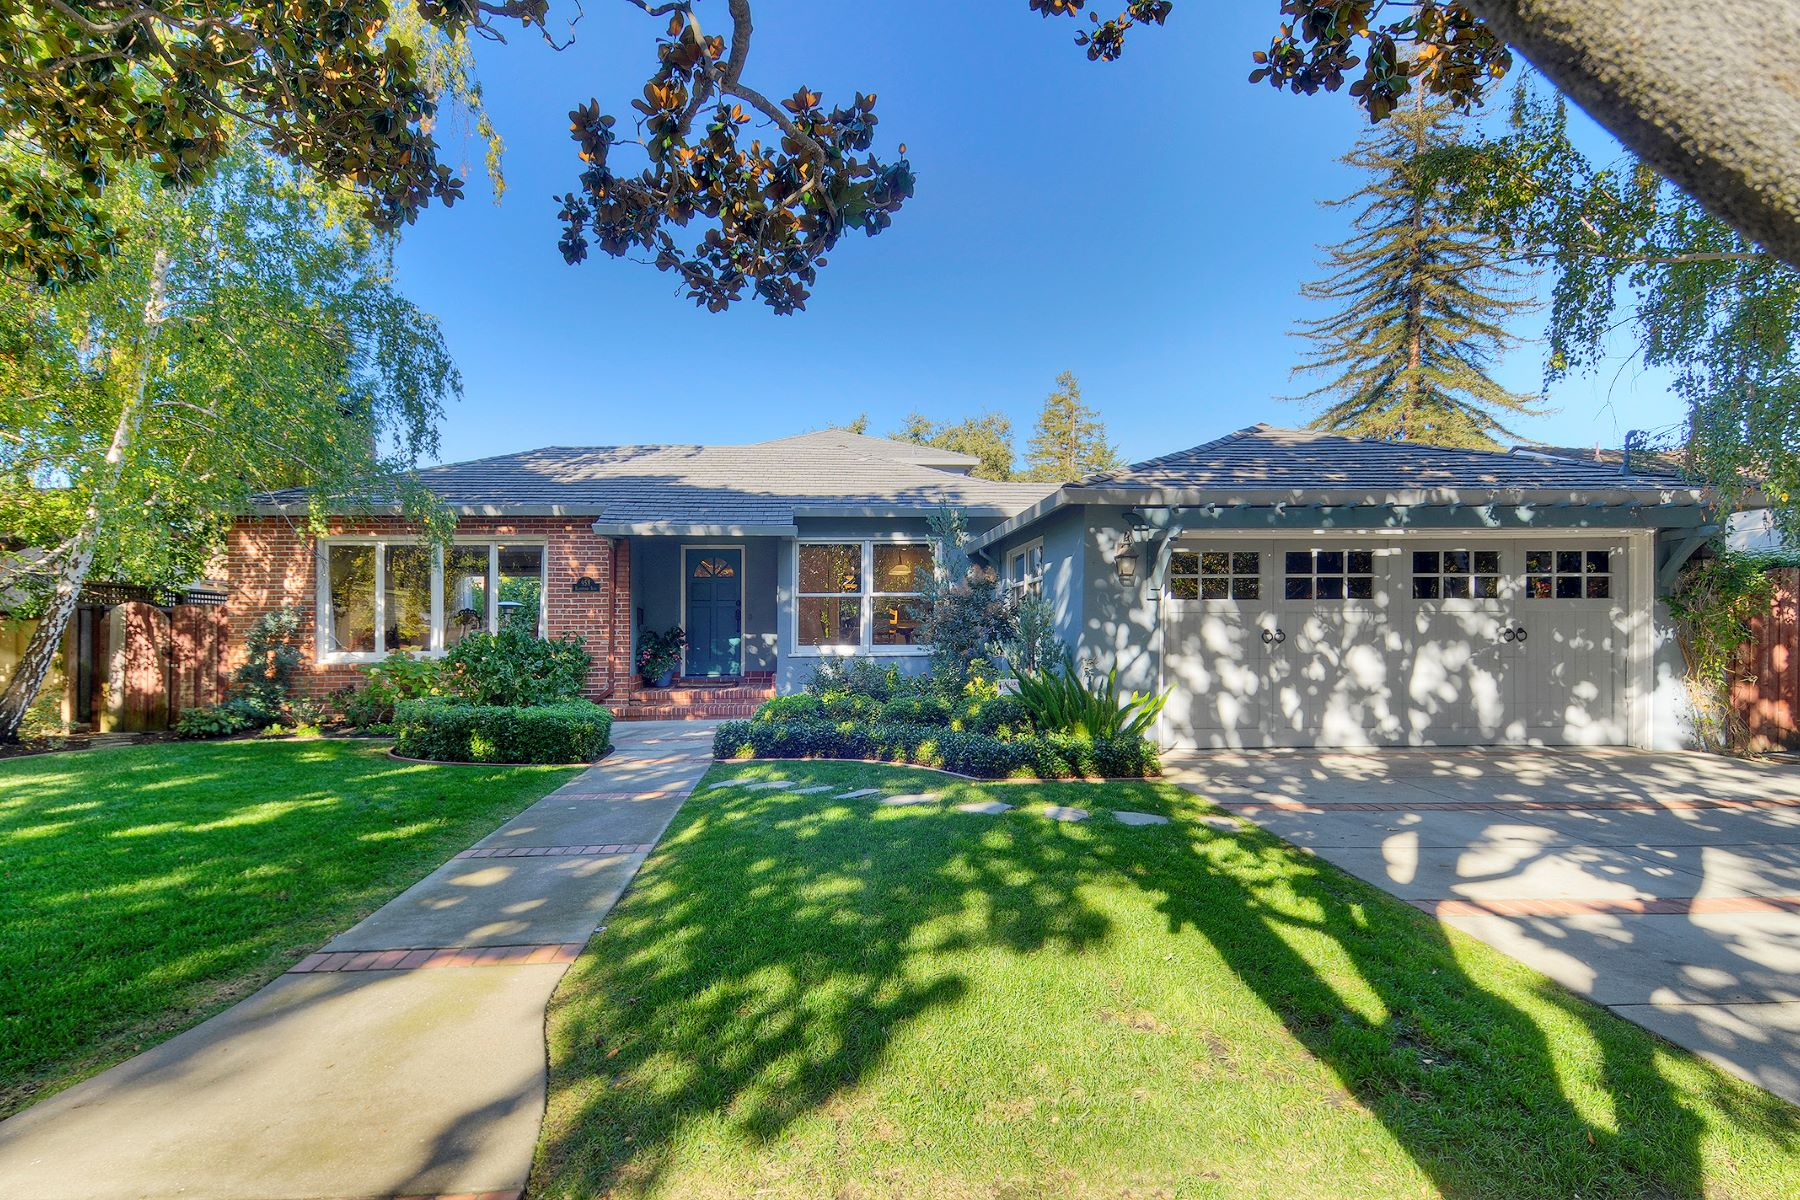 Single Family Home for Active at Stunning Edgewood Park Home 958 Blandford Boulevard Redwood City, California 94062 United States